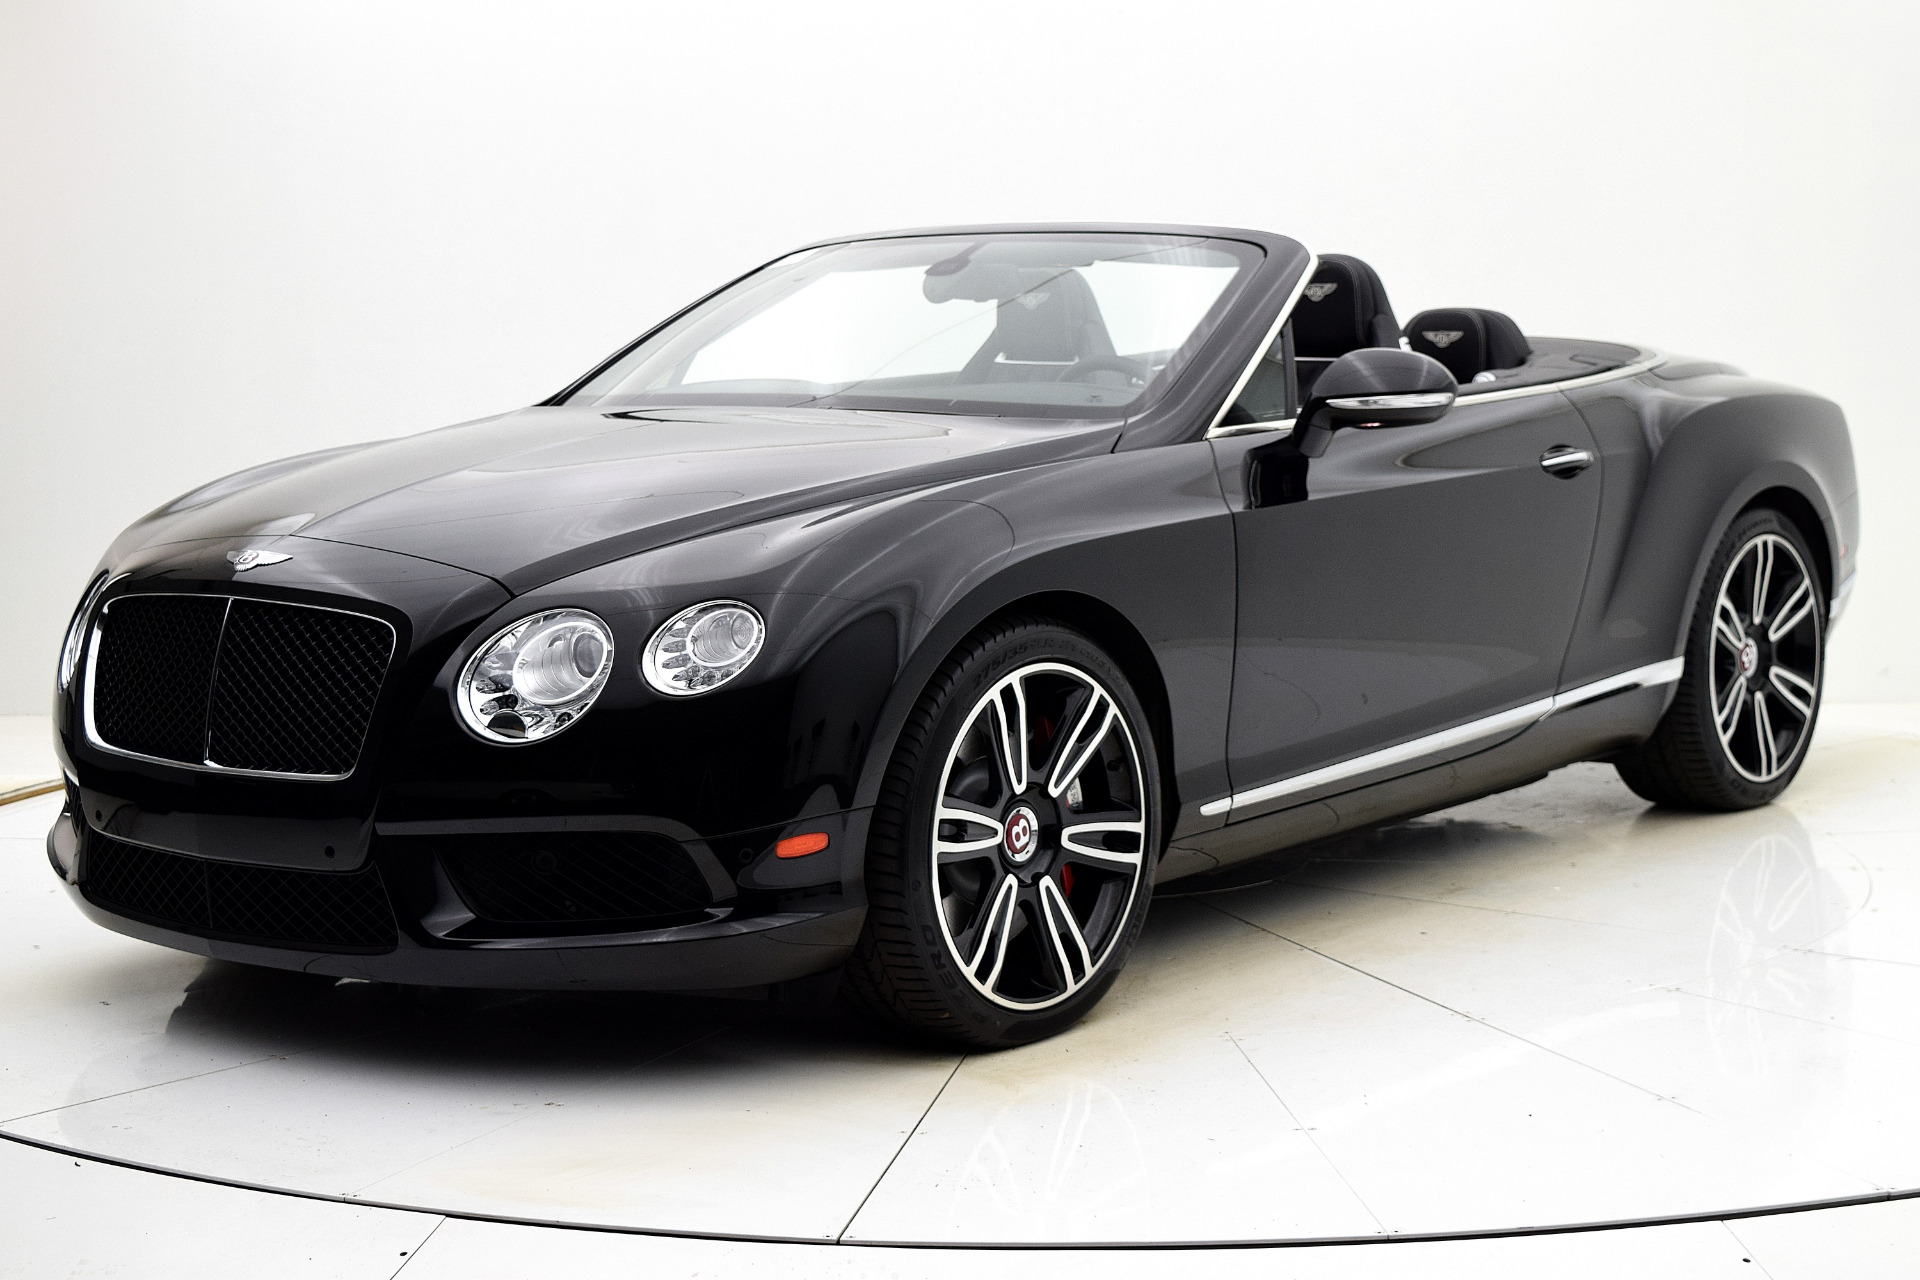 Used 2014 Bentley Continental GT V8 Convertible for sale Sold at F.C. Kerbeck Aston Martin in Palmyra NJ 08065 2